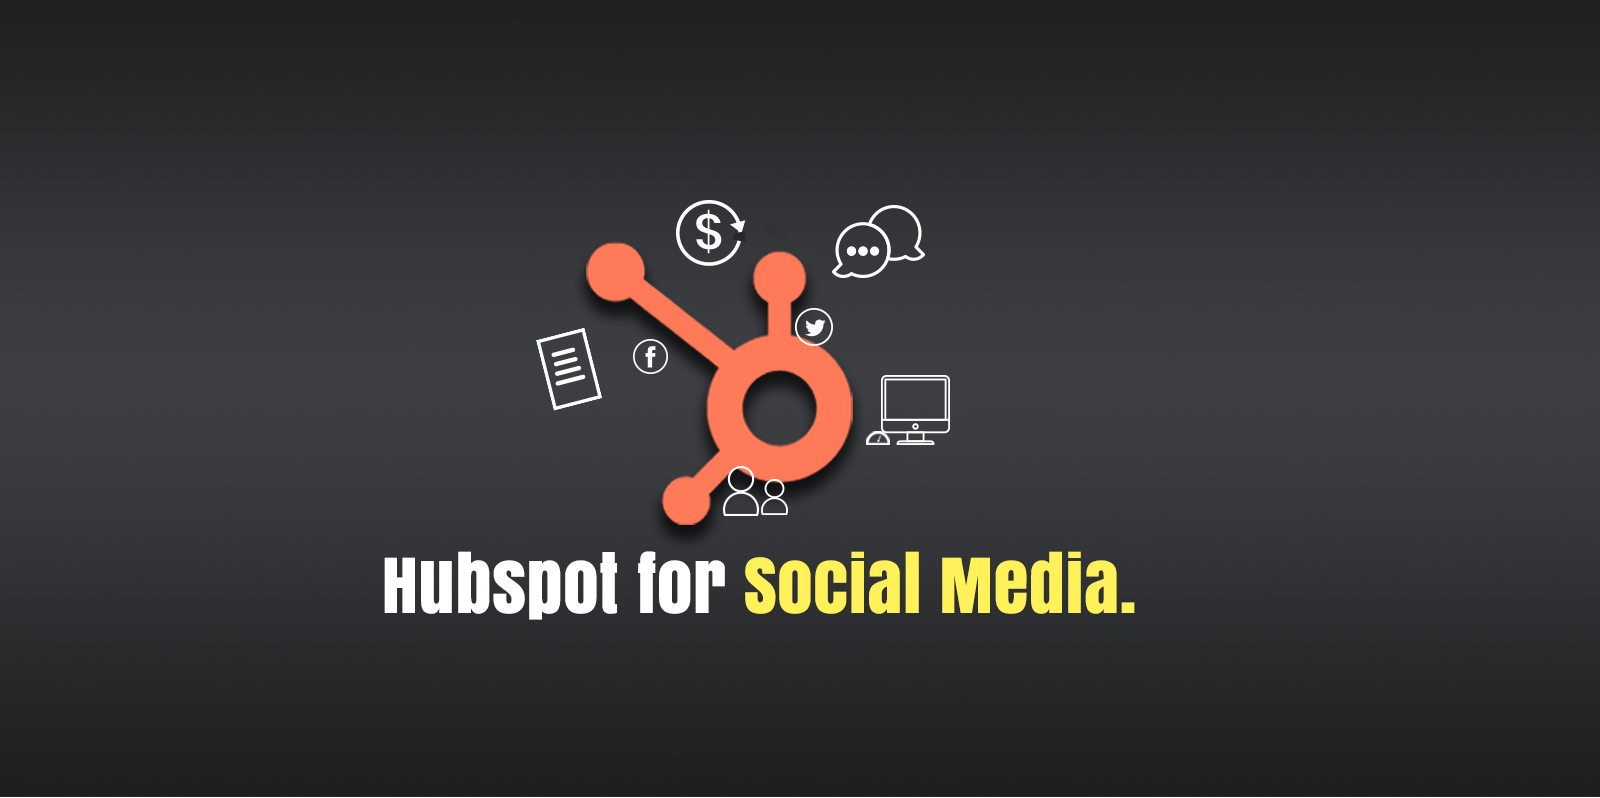 6 Benefits of using HubSpot for social media management